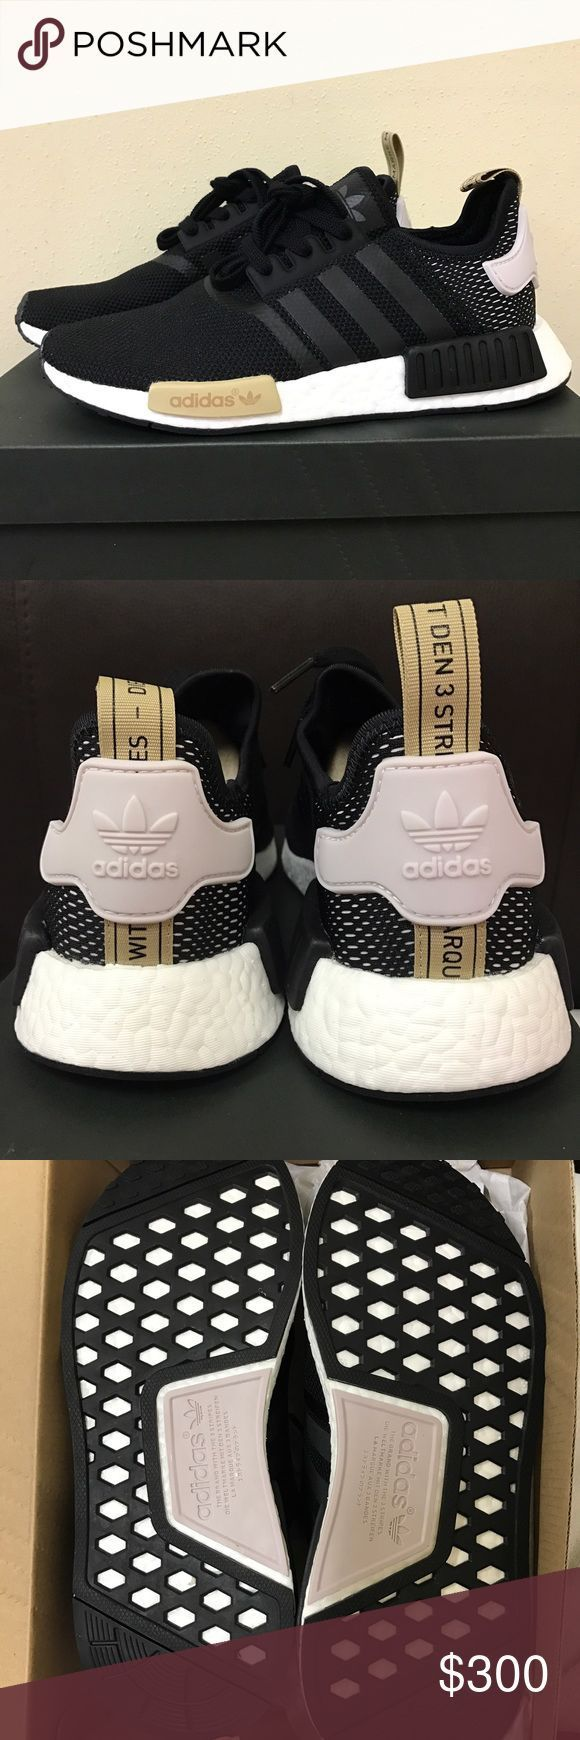 Nmd r1 glitch ( Clothing   Shoes ) in San Jose 73be15d28